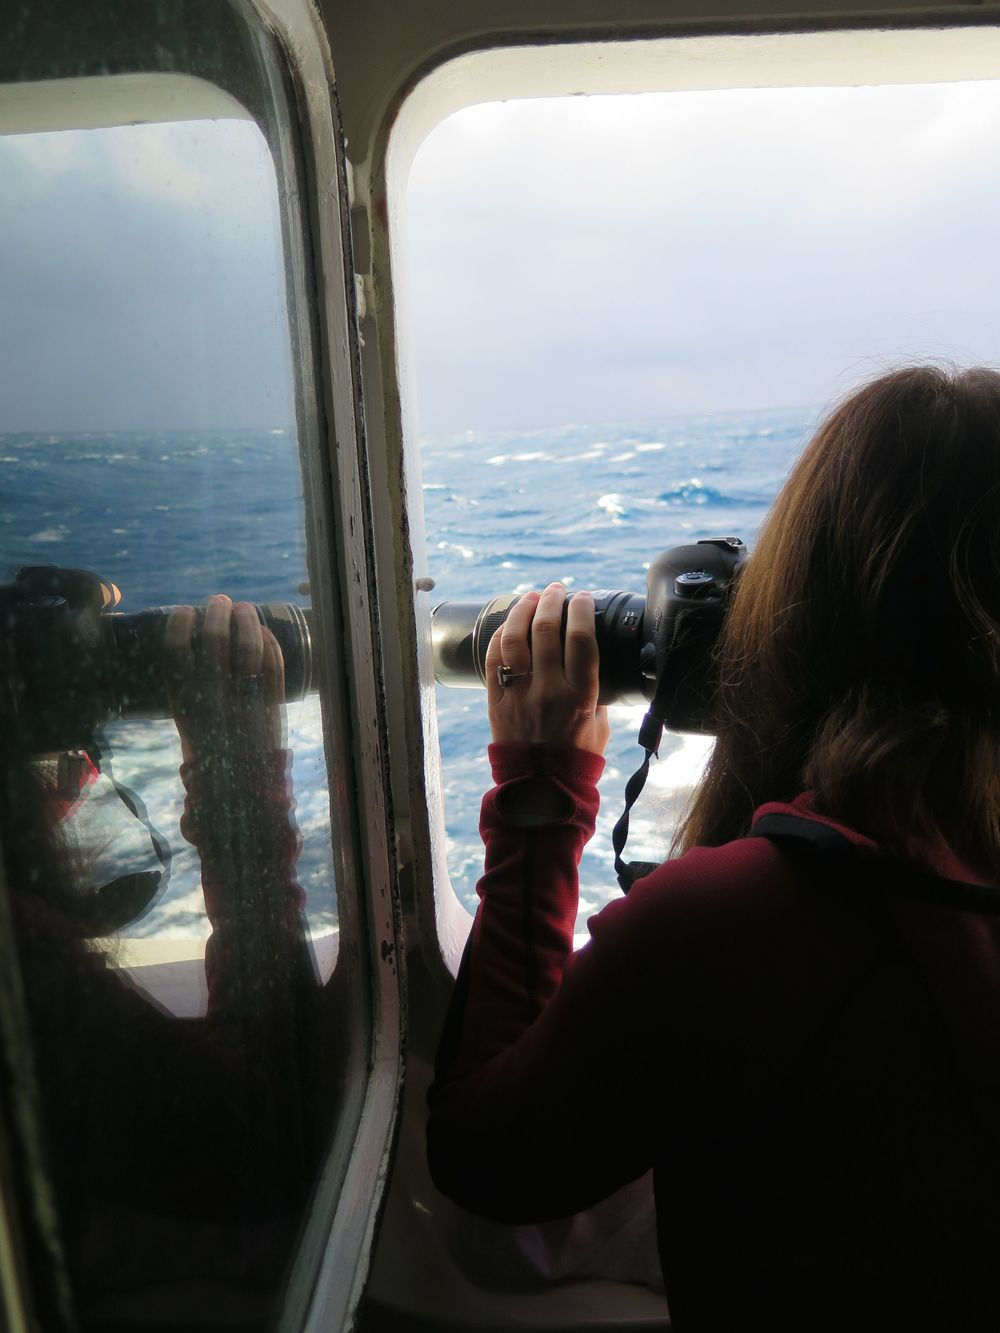 Even in rough conditions, our cabin window afforded Pamelia a good view for photographing birds and other sights.